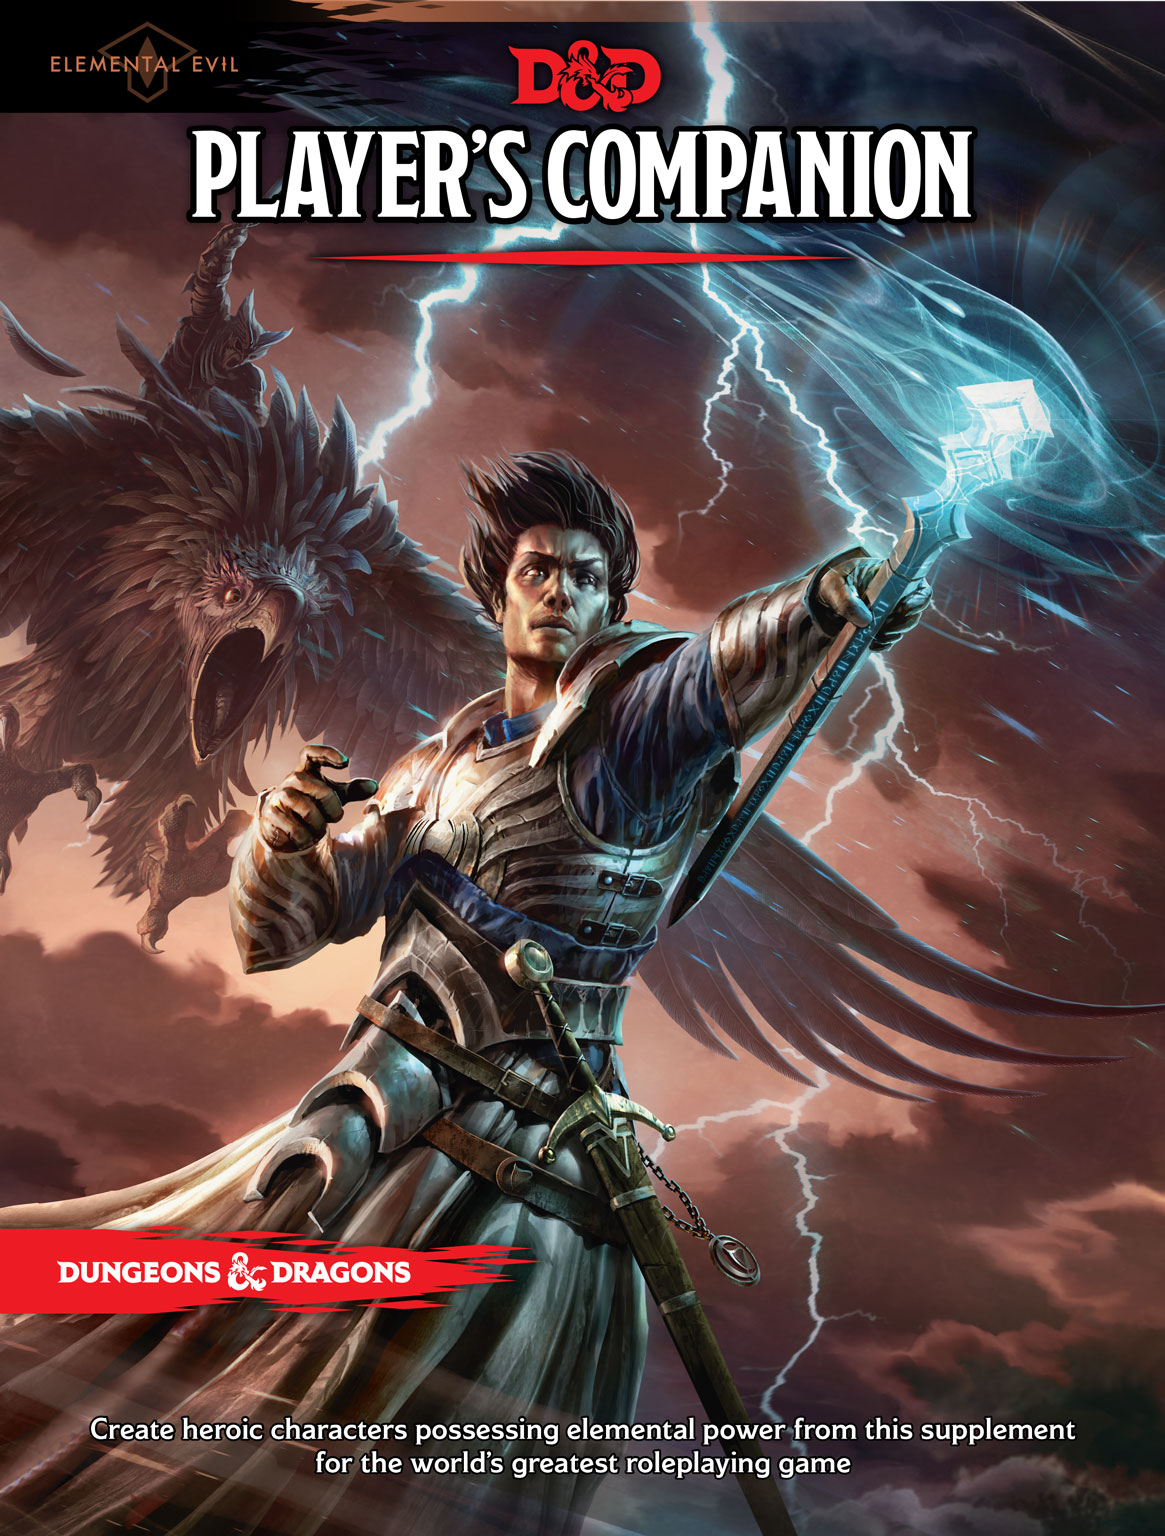 File:Elemental evil players companion.jpg